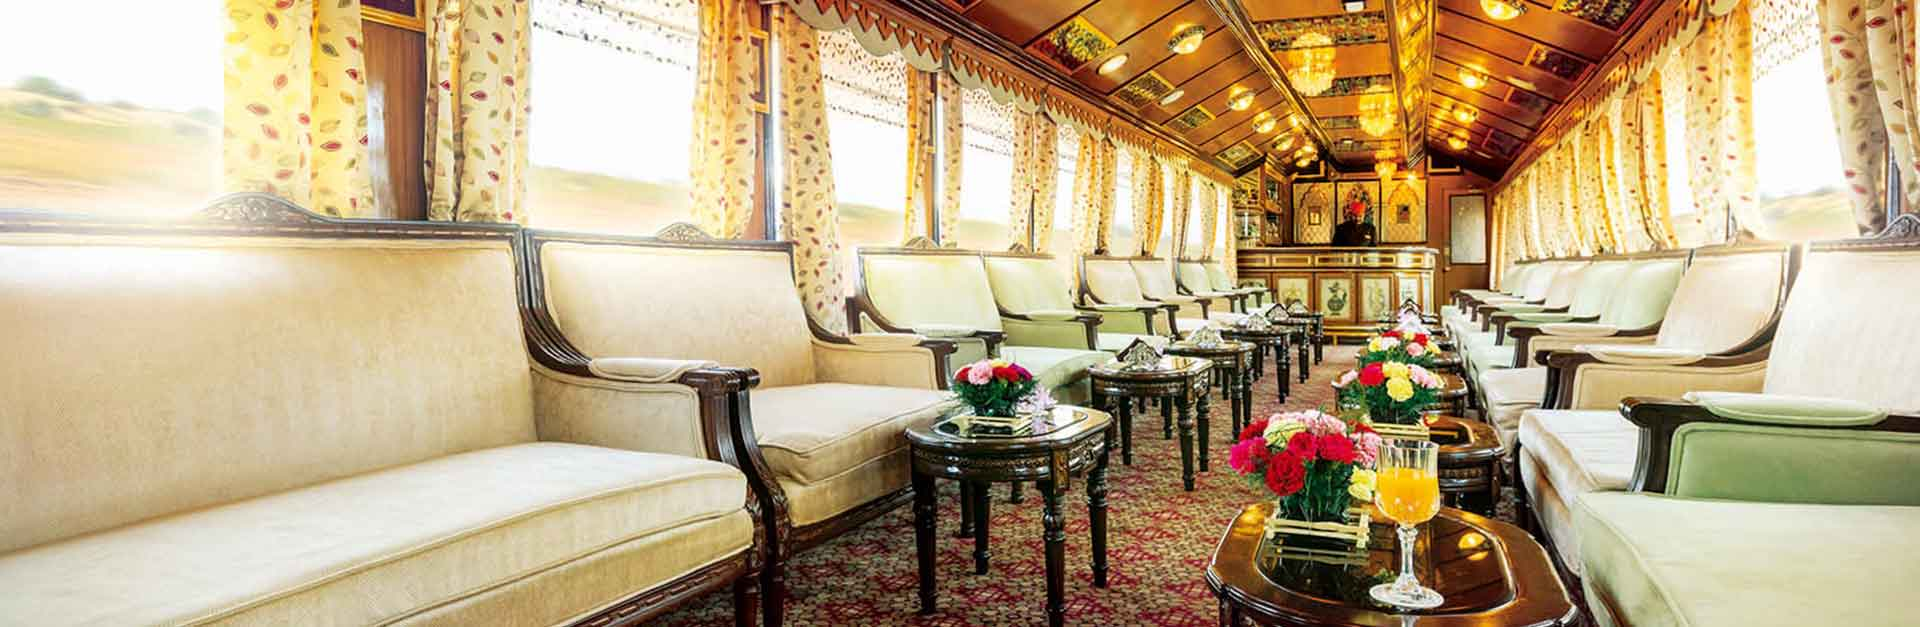 palace on wheels package